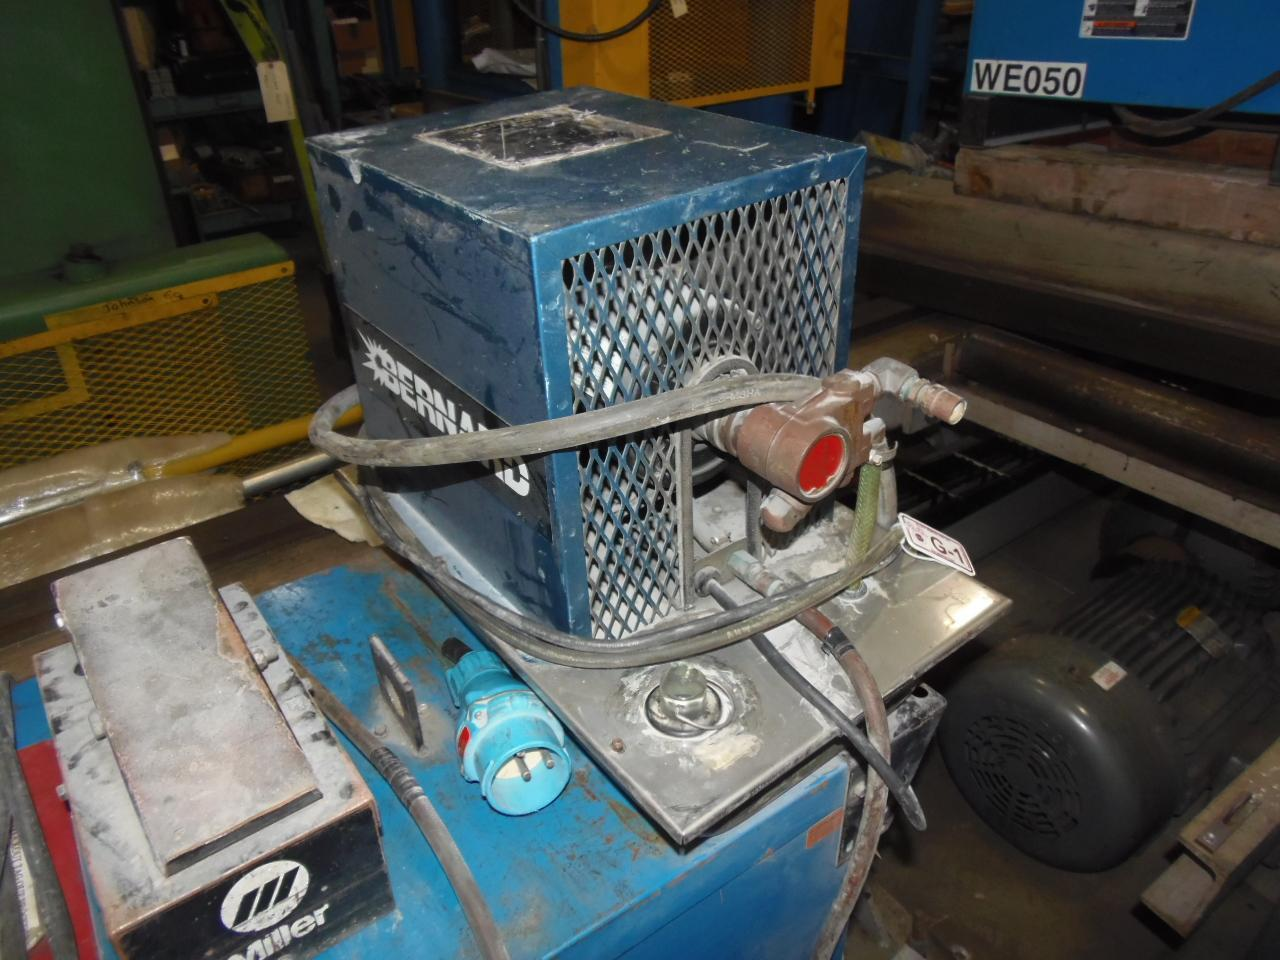 MILLER TIG WELDER, MODEL SYNCROWAVE 250, COOLER, GUN, CART